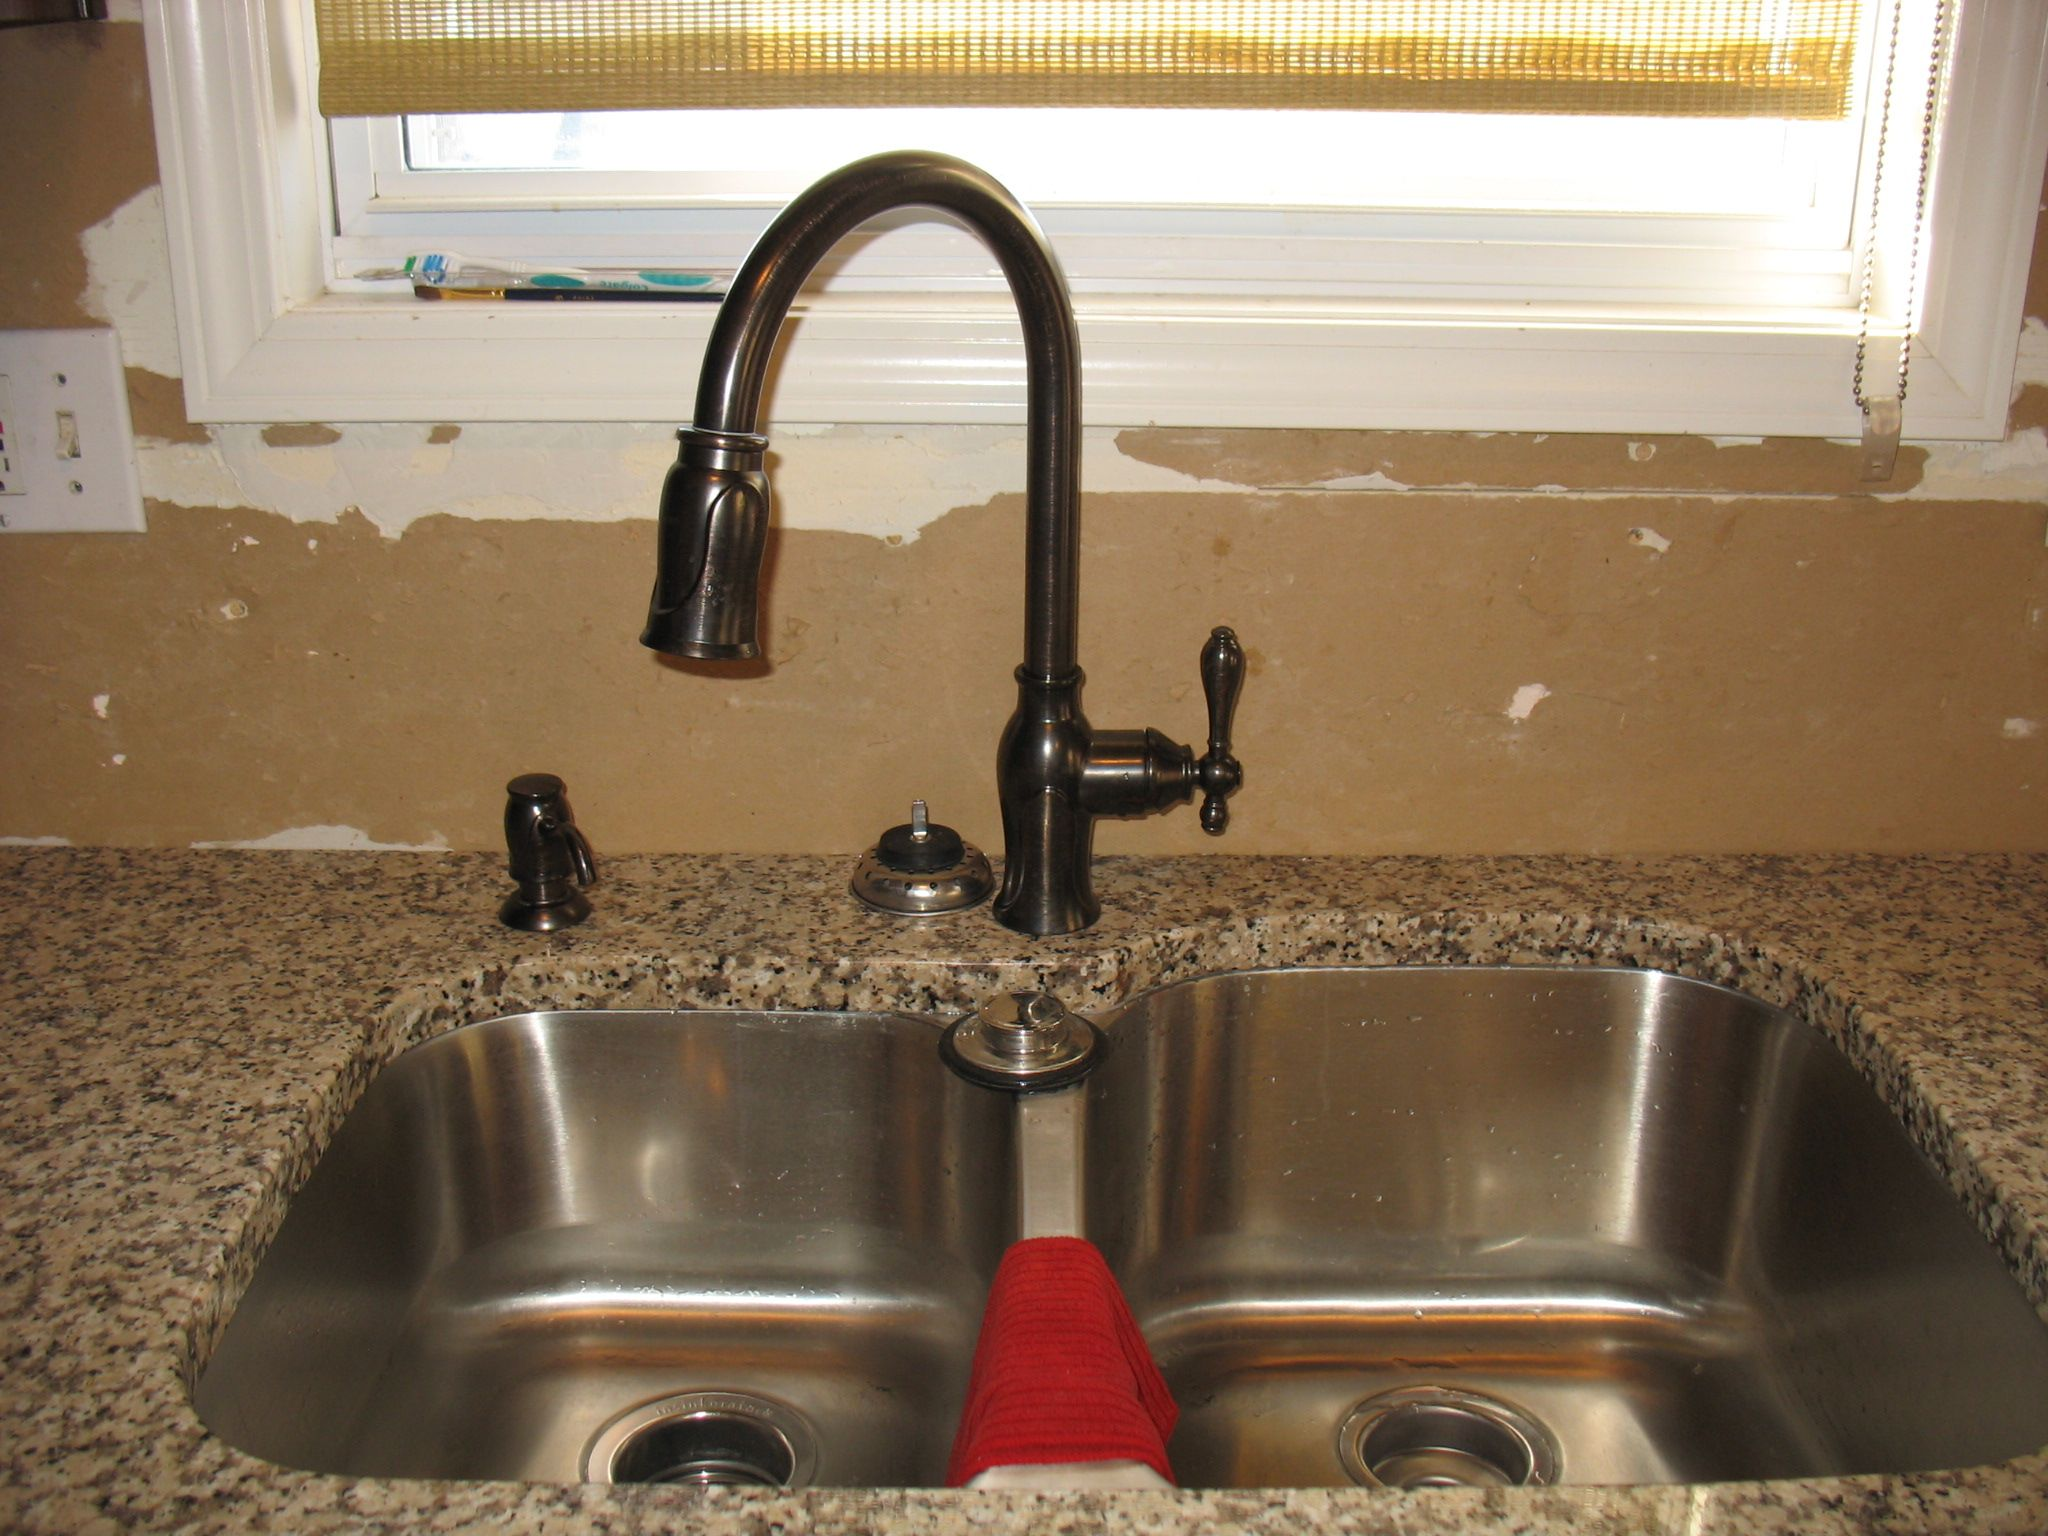 bronze faucet Stainless sink, Stainless steel sinks